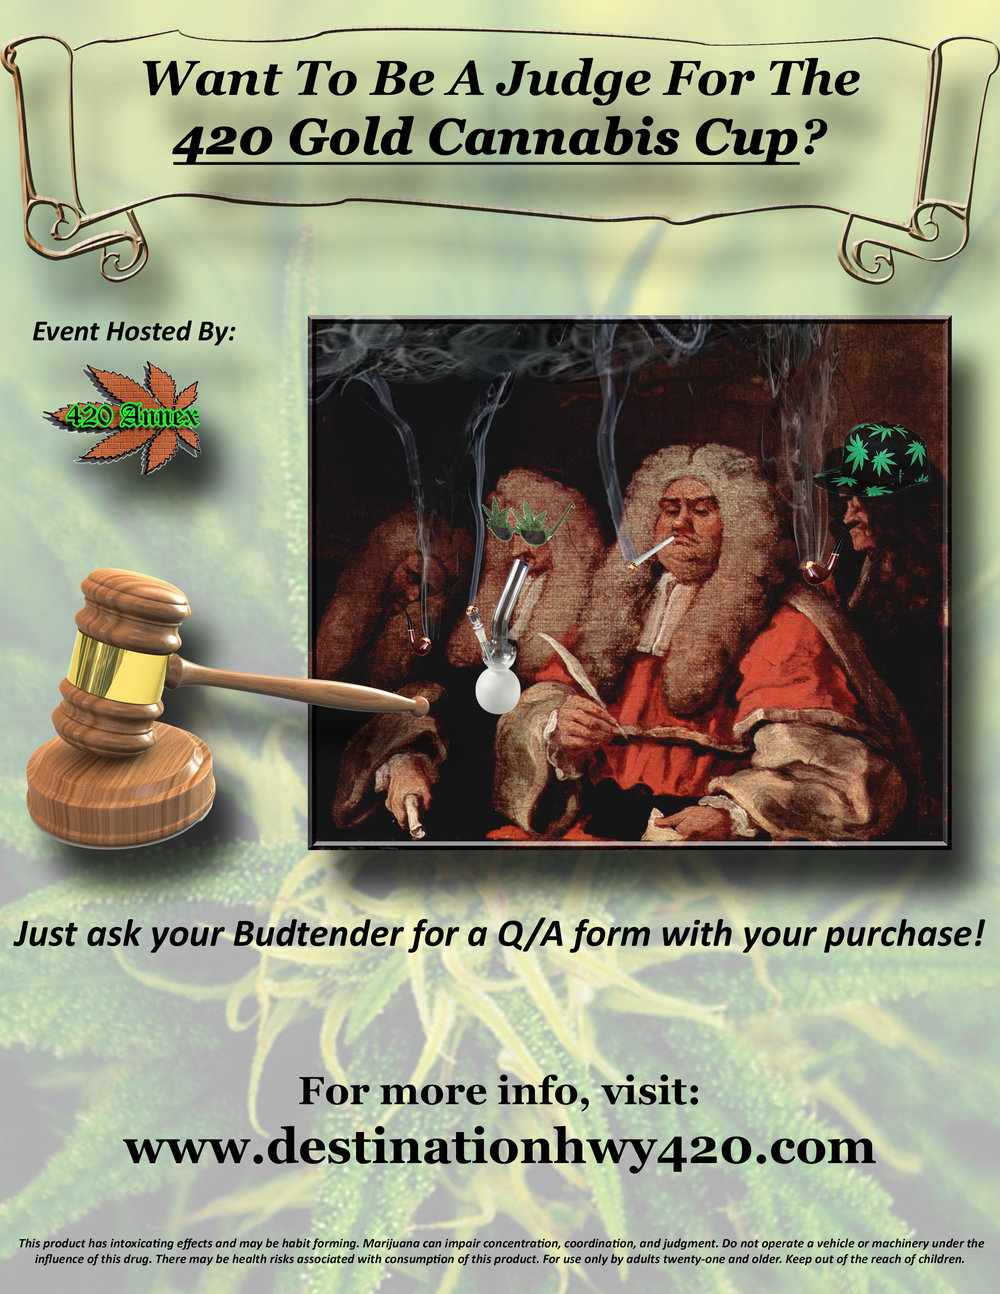 If you've ever wanted to be a judge at a cannabis competition, this is your chance! The 420 Annex needs judges for the 2019 420 Gold Cannabis Cup! Stop by Destination HWY 420, in East Bremerton, and pick up a Q/A form to be eligible to become a judge.